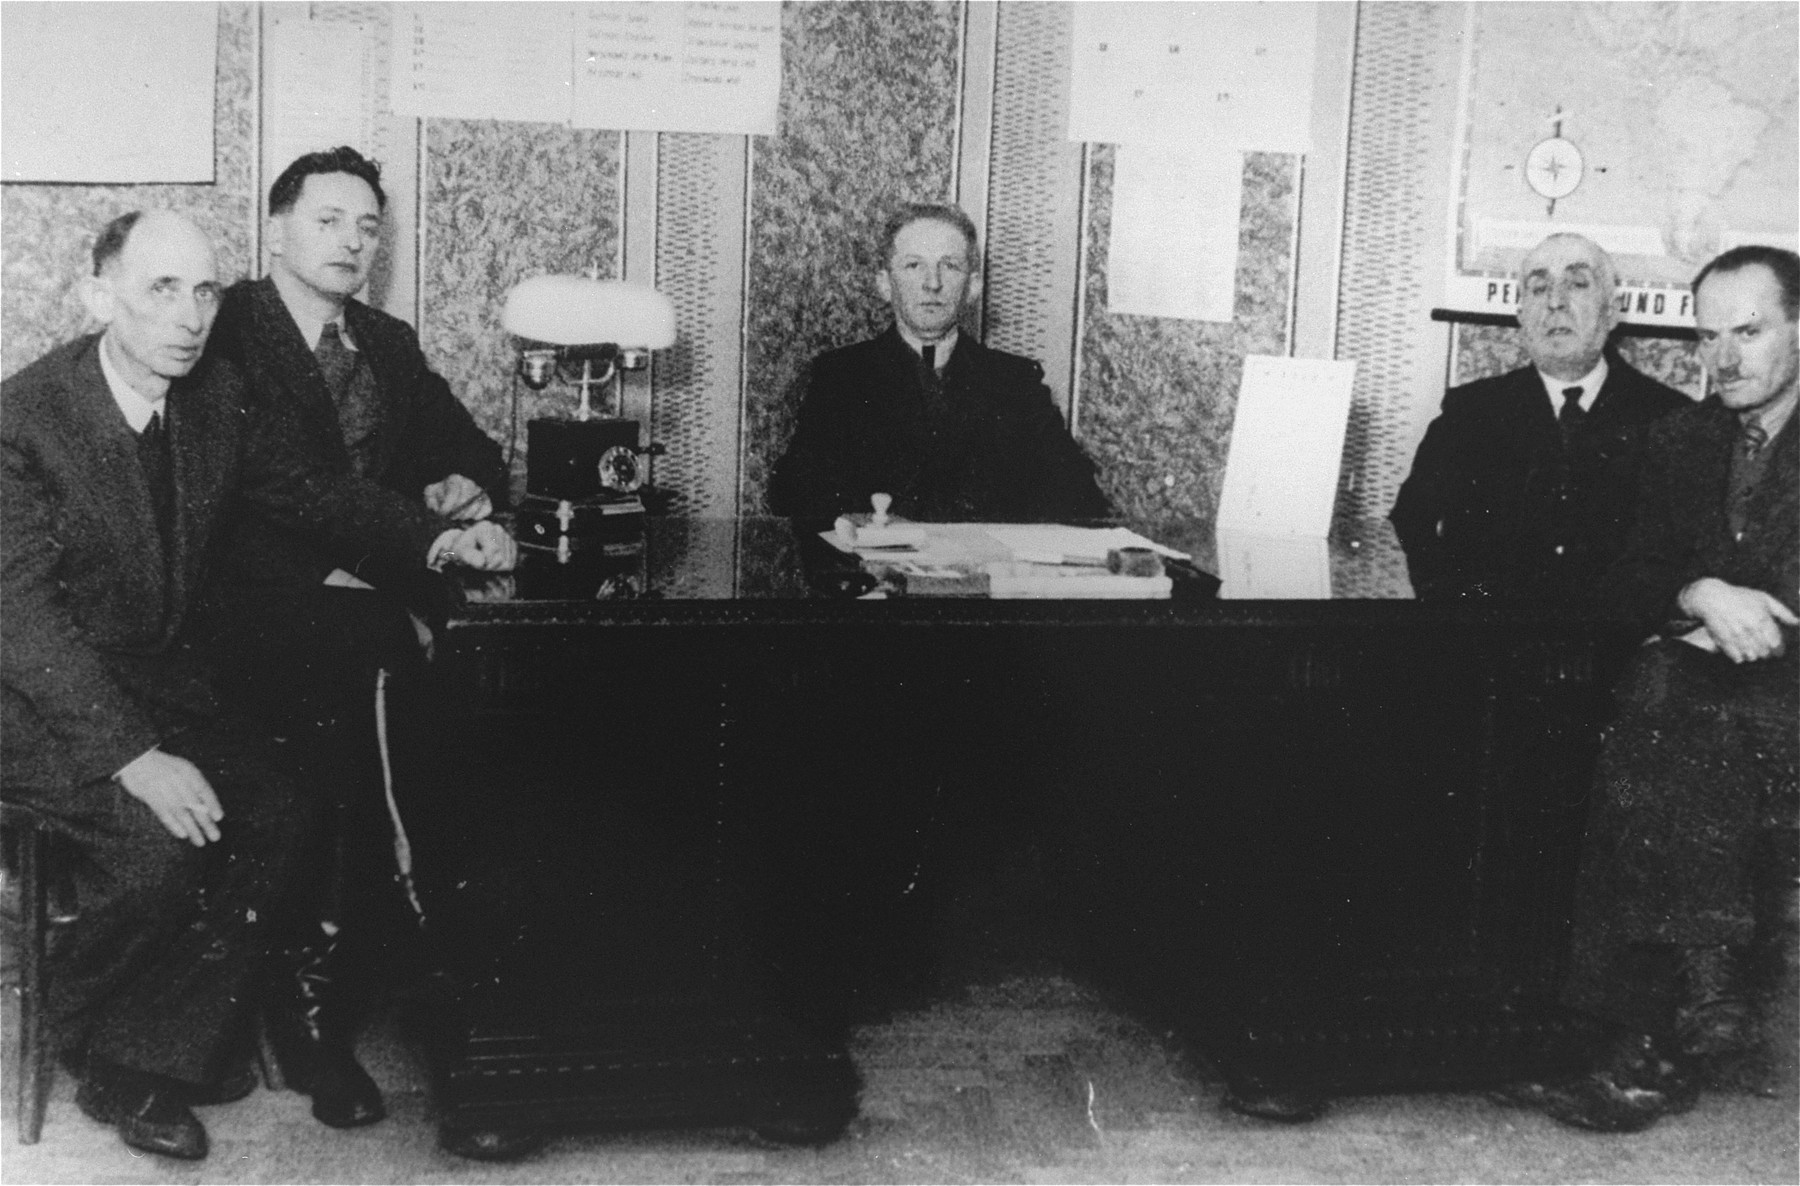 Members of the ghetto administration pose around a desk in the office of the Judenrat in the Kielce ghetto.  This photo was one the images included in an official album prepared by the Judenrat of the Kielce ghetto in 1942.